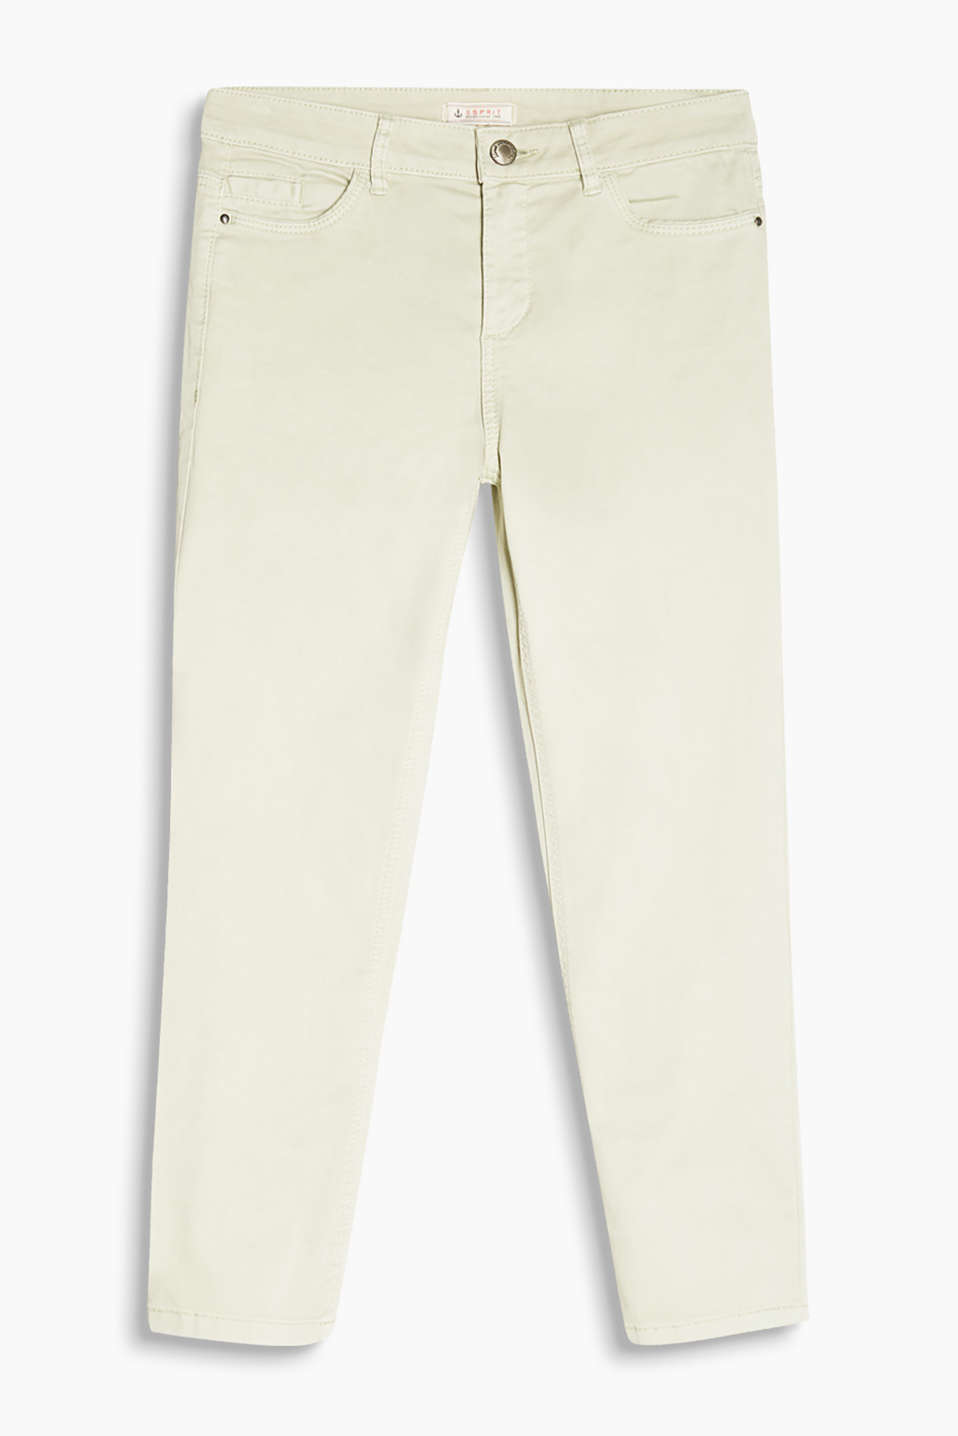 Soft stretch cotton capris with a satin finish